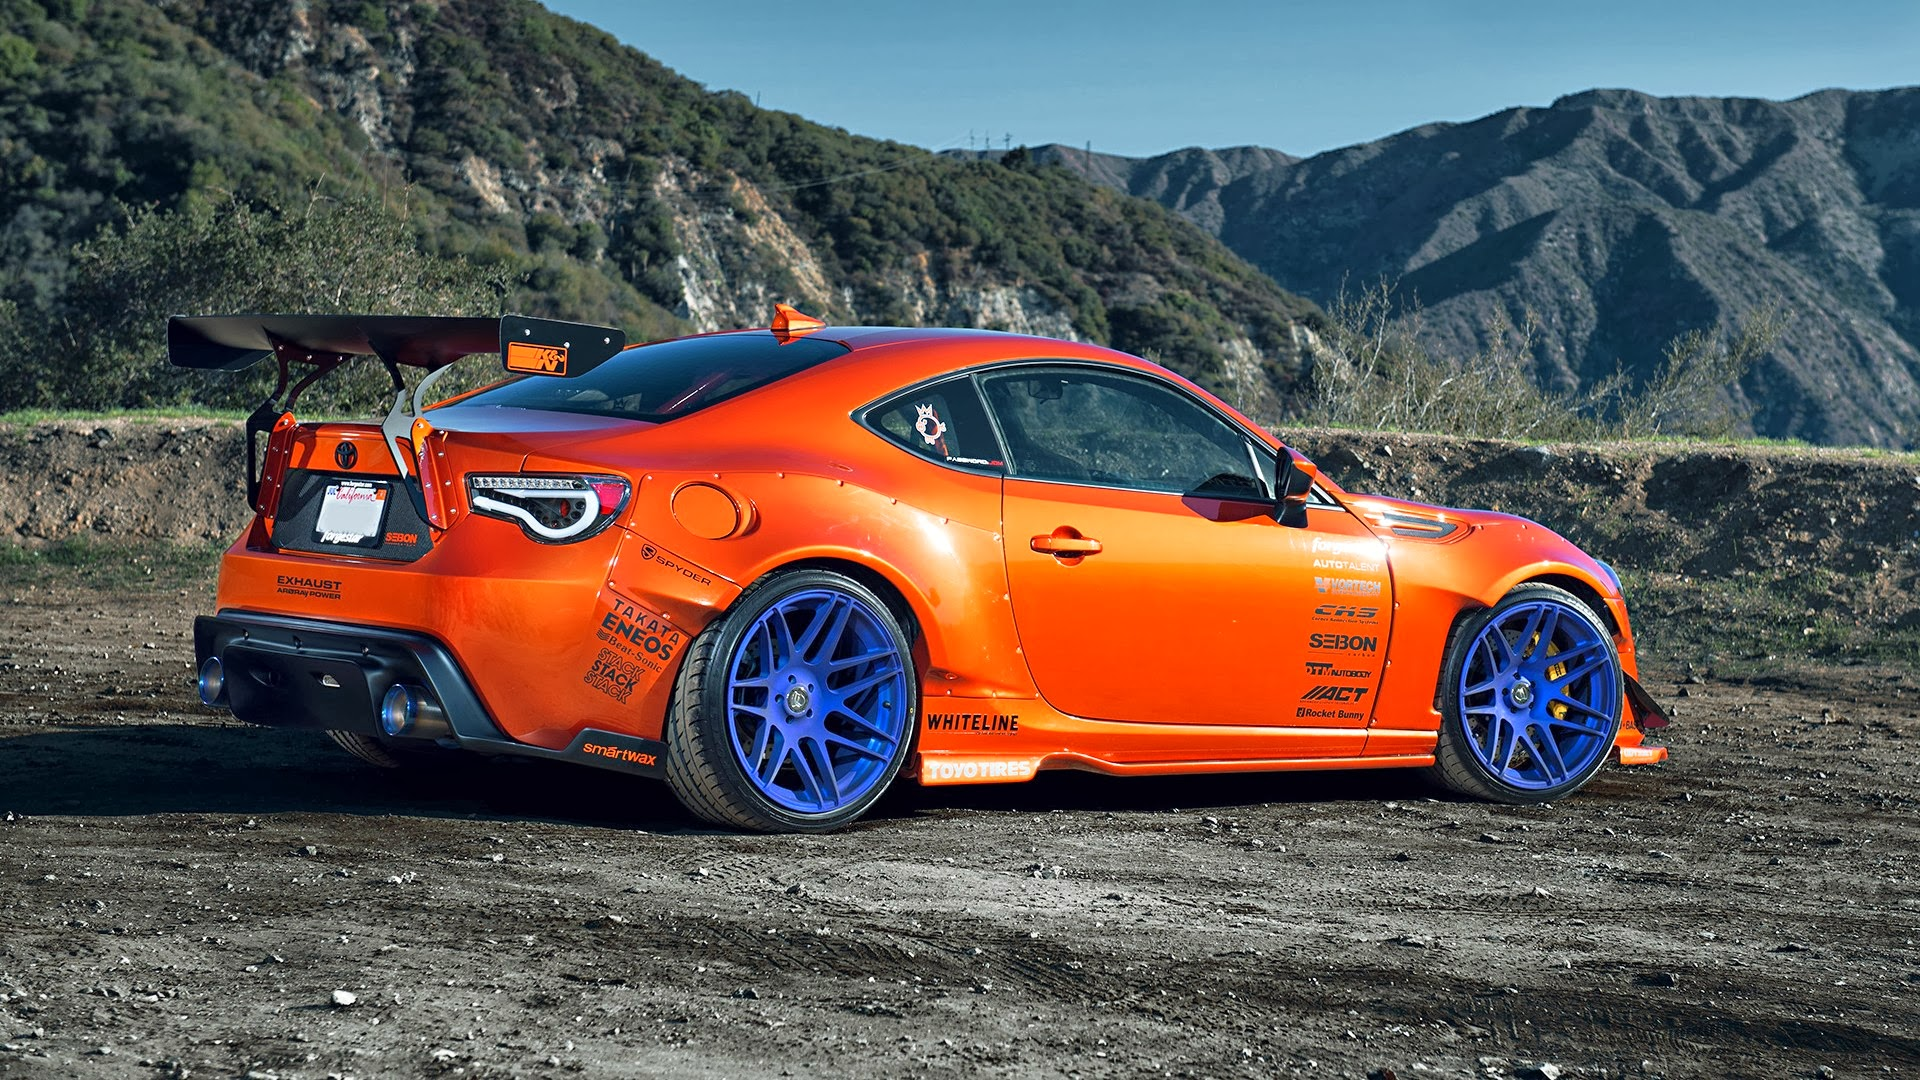 toyota gt86 tuning car new car modification. Black Bedroom Furniture Sets. Home Design Ideas